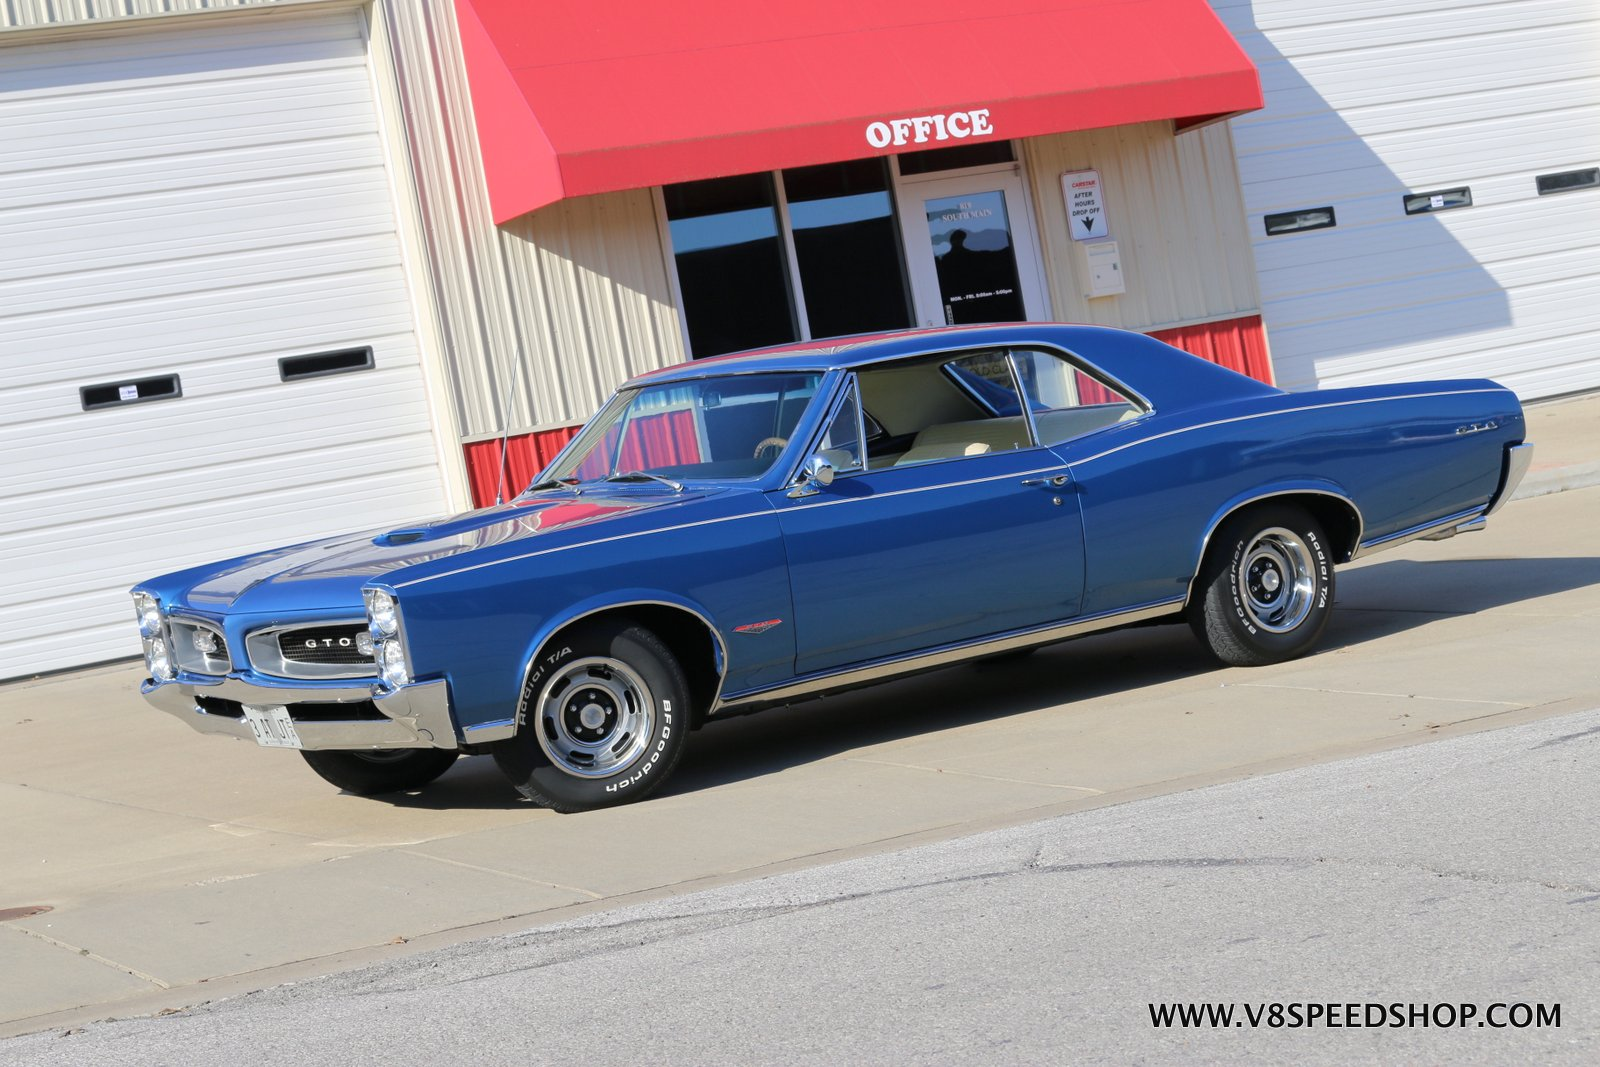 1966 Pontiac GTO Maintenance Photo Gallery